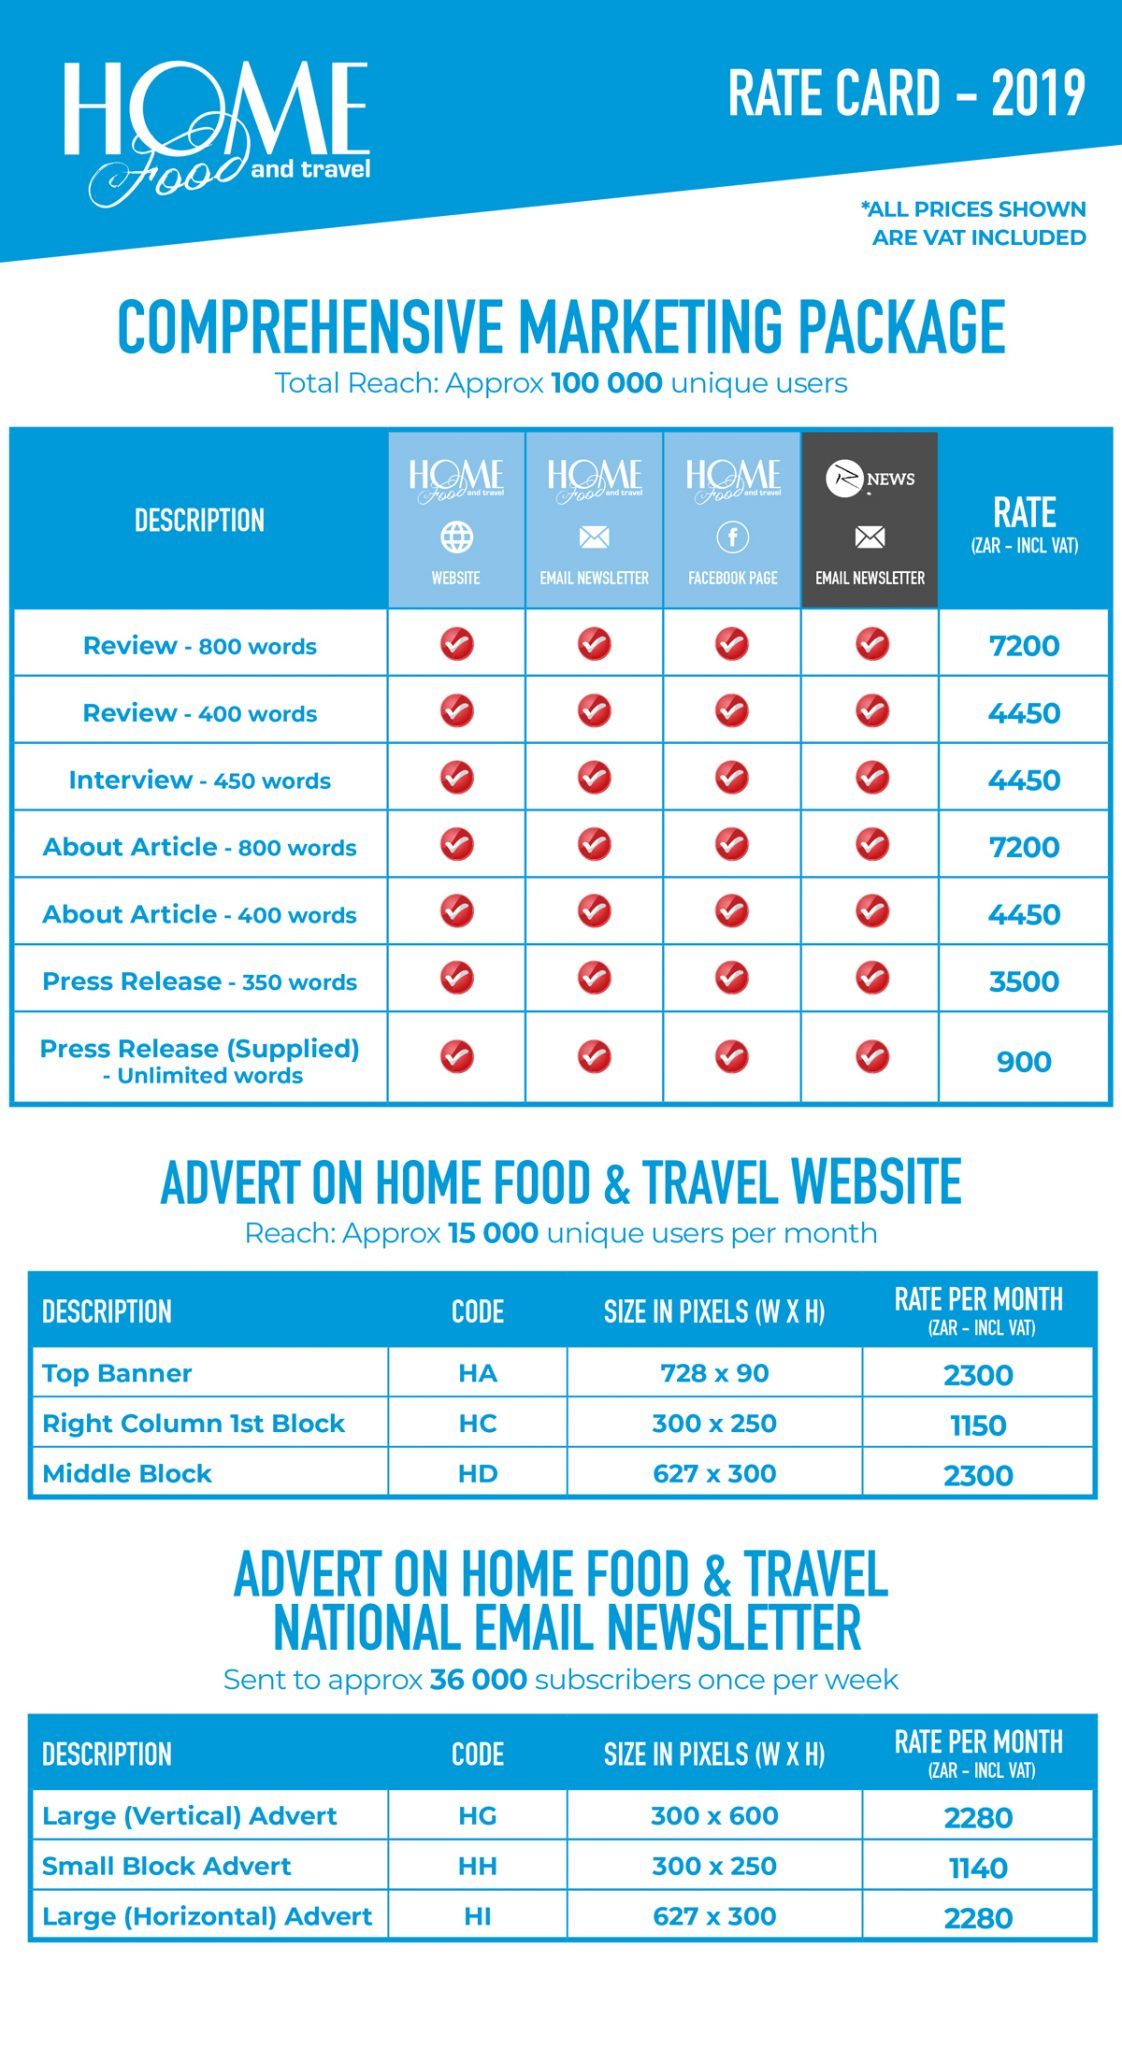 Advertise with us | Home Food and Travel